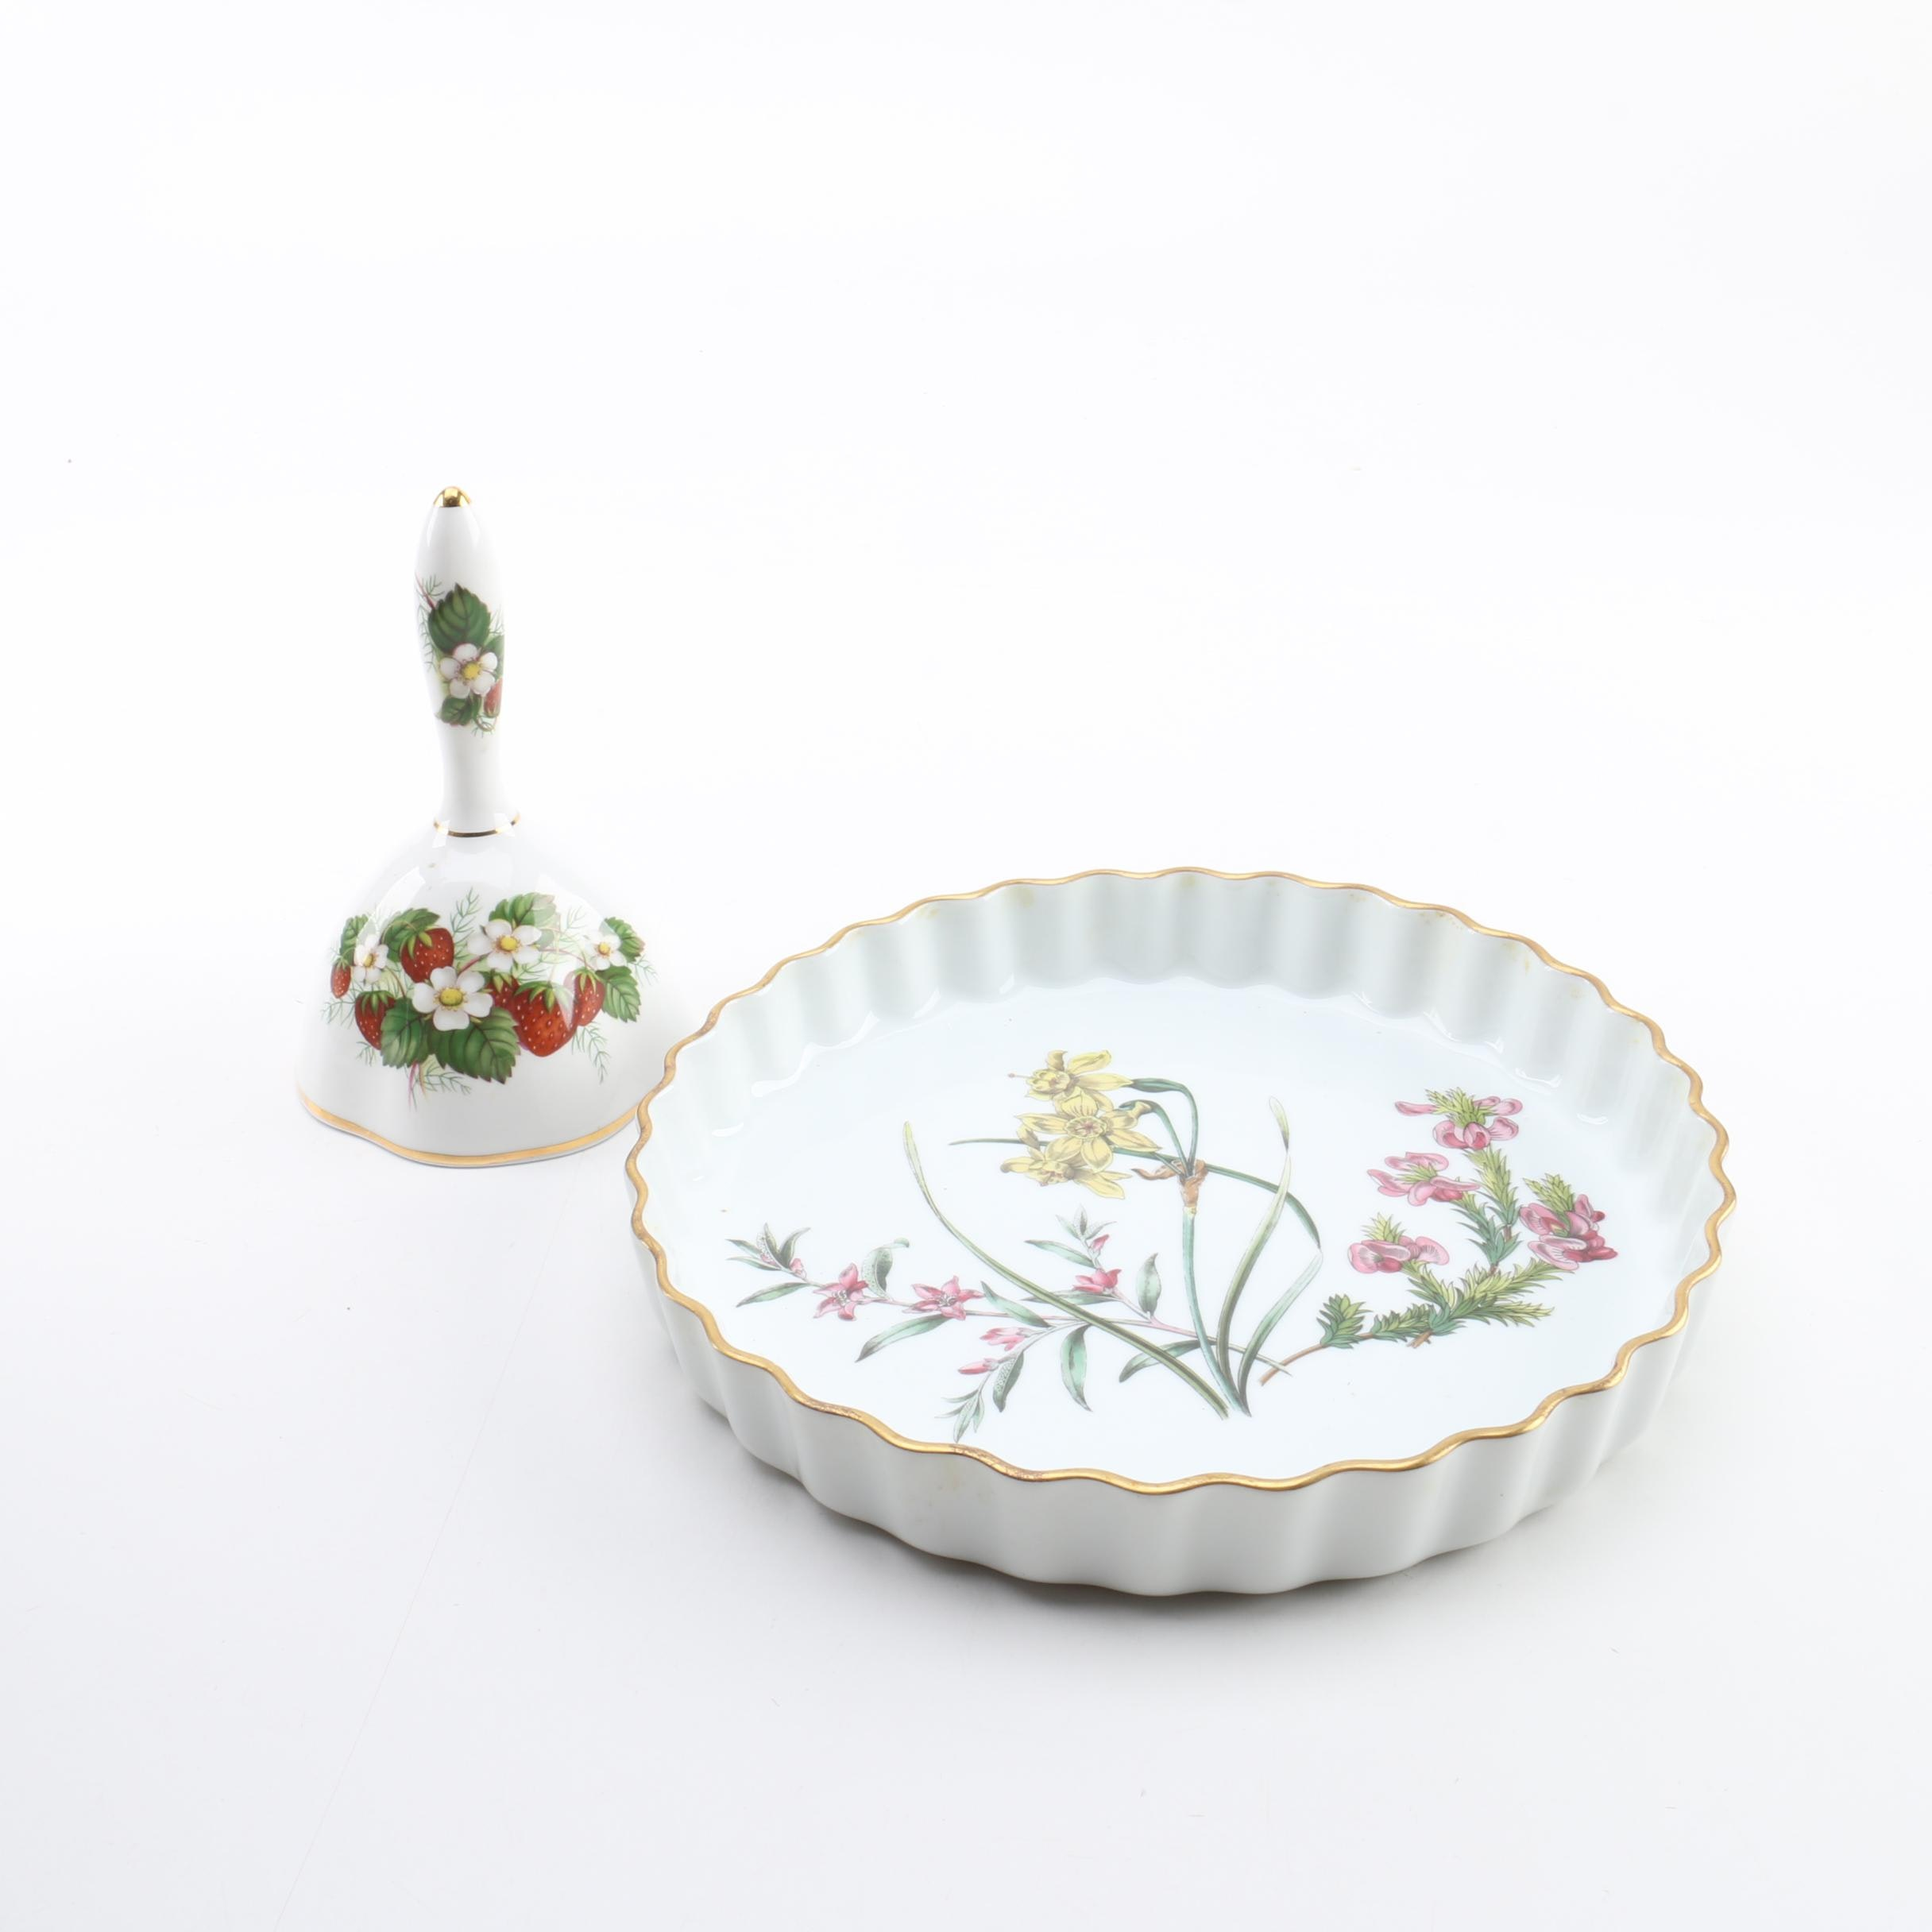 Spode \ Stafford Flowers\  Tart Pan and Hammersley \ Strawberry ...  sc 1 st  EBTH.com & Spode \